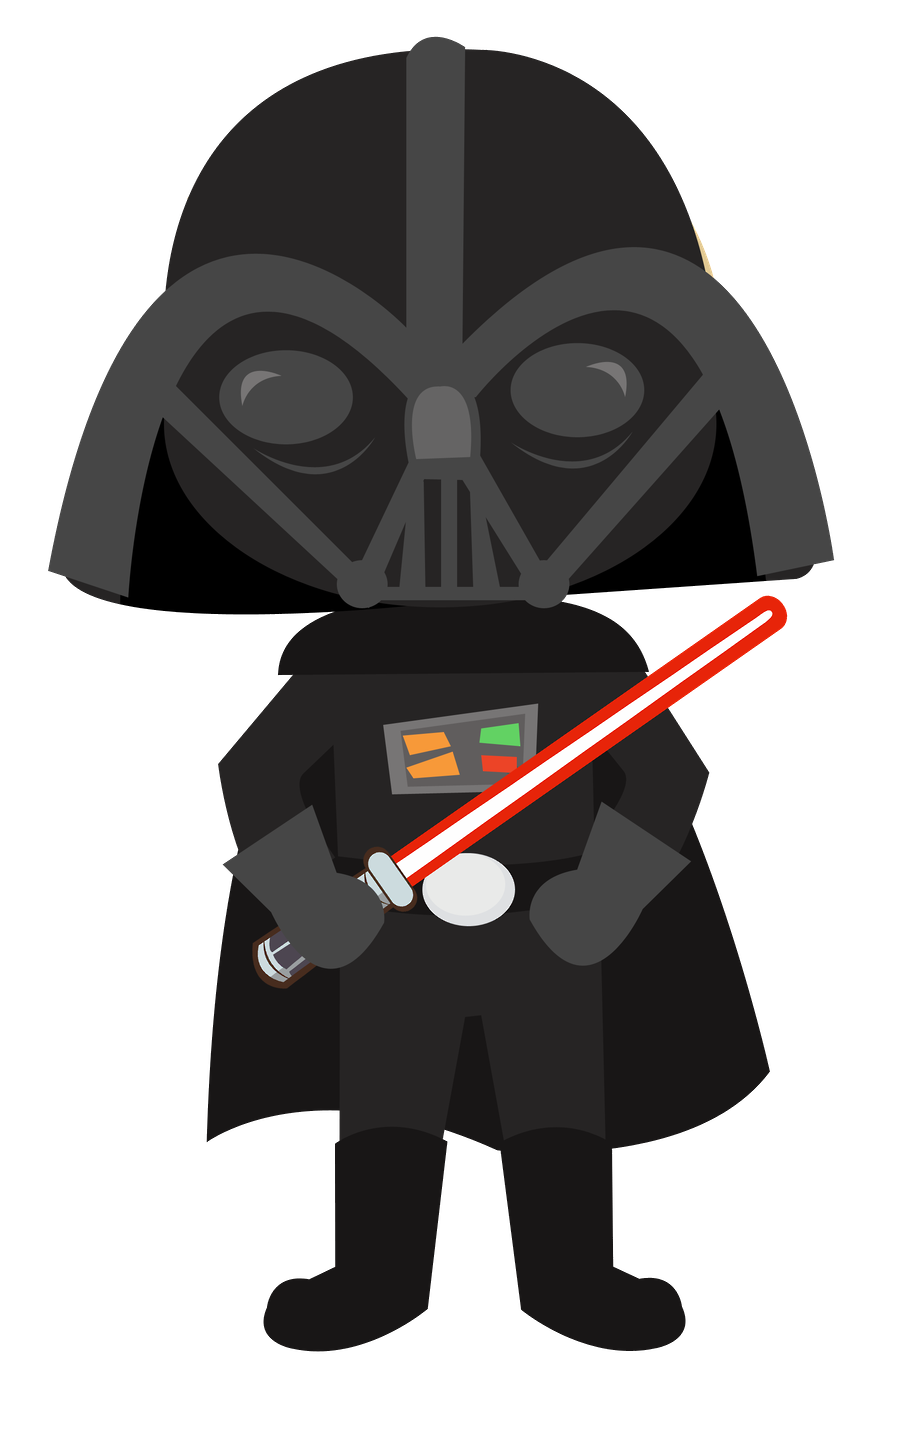 Star wars minus felt. Starwars clipart